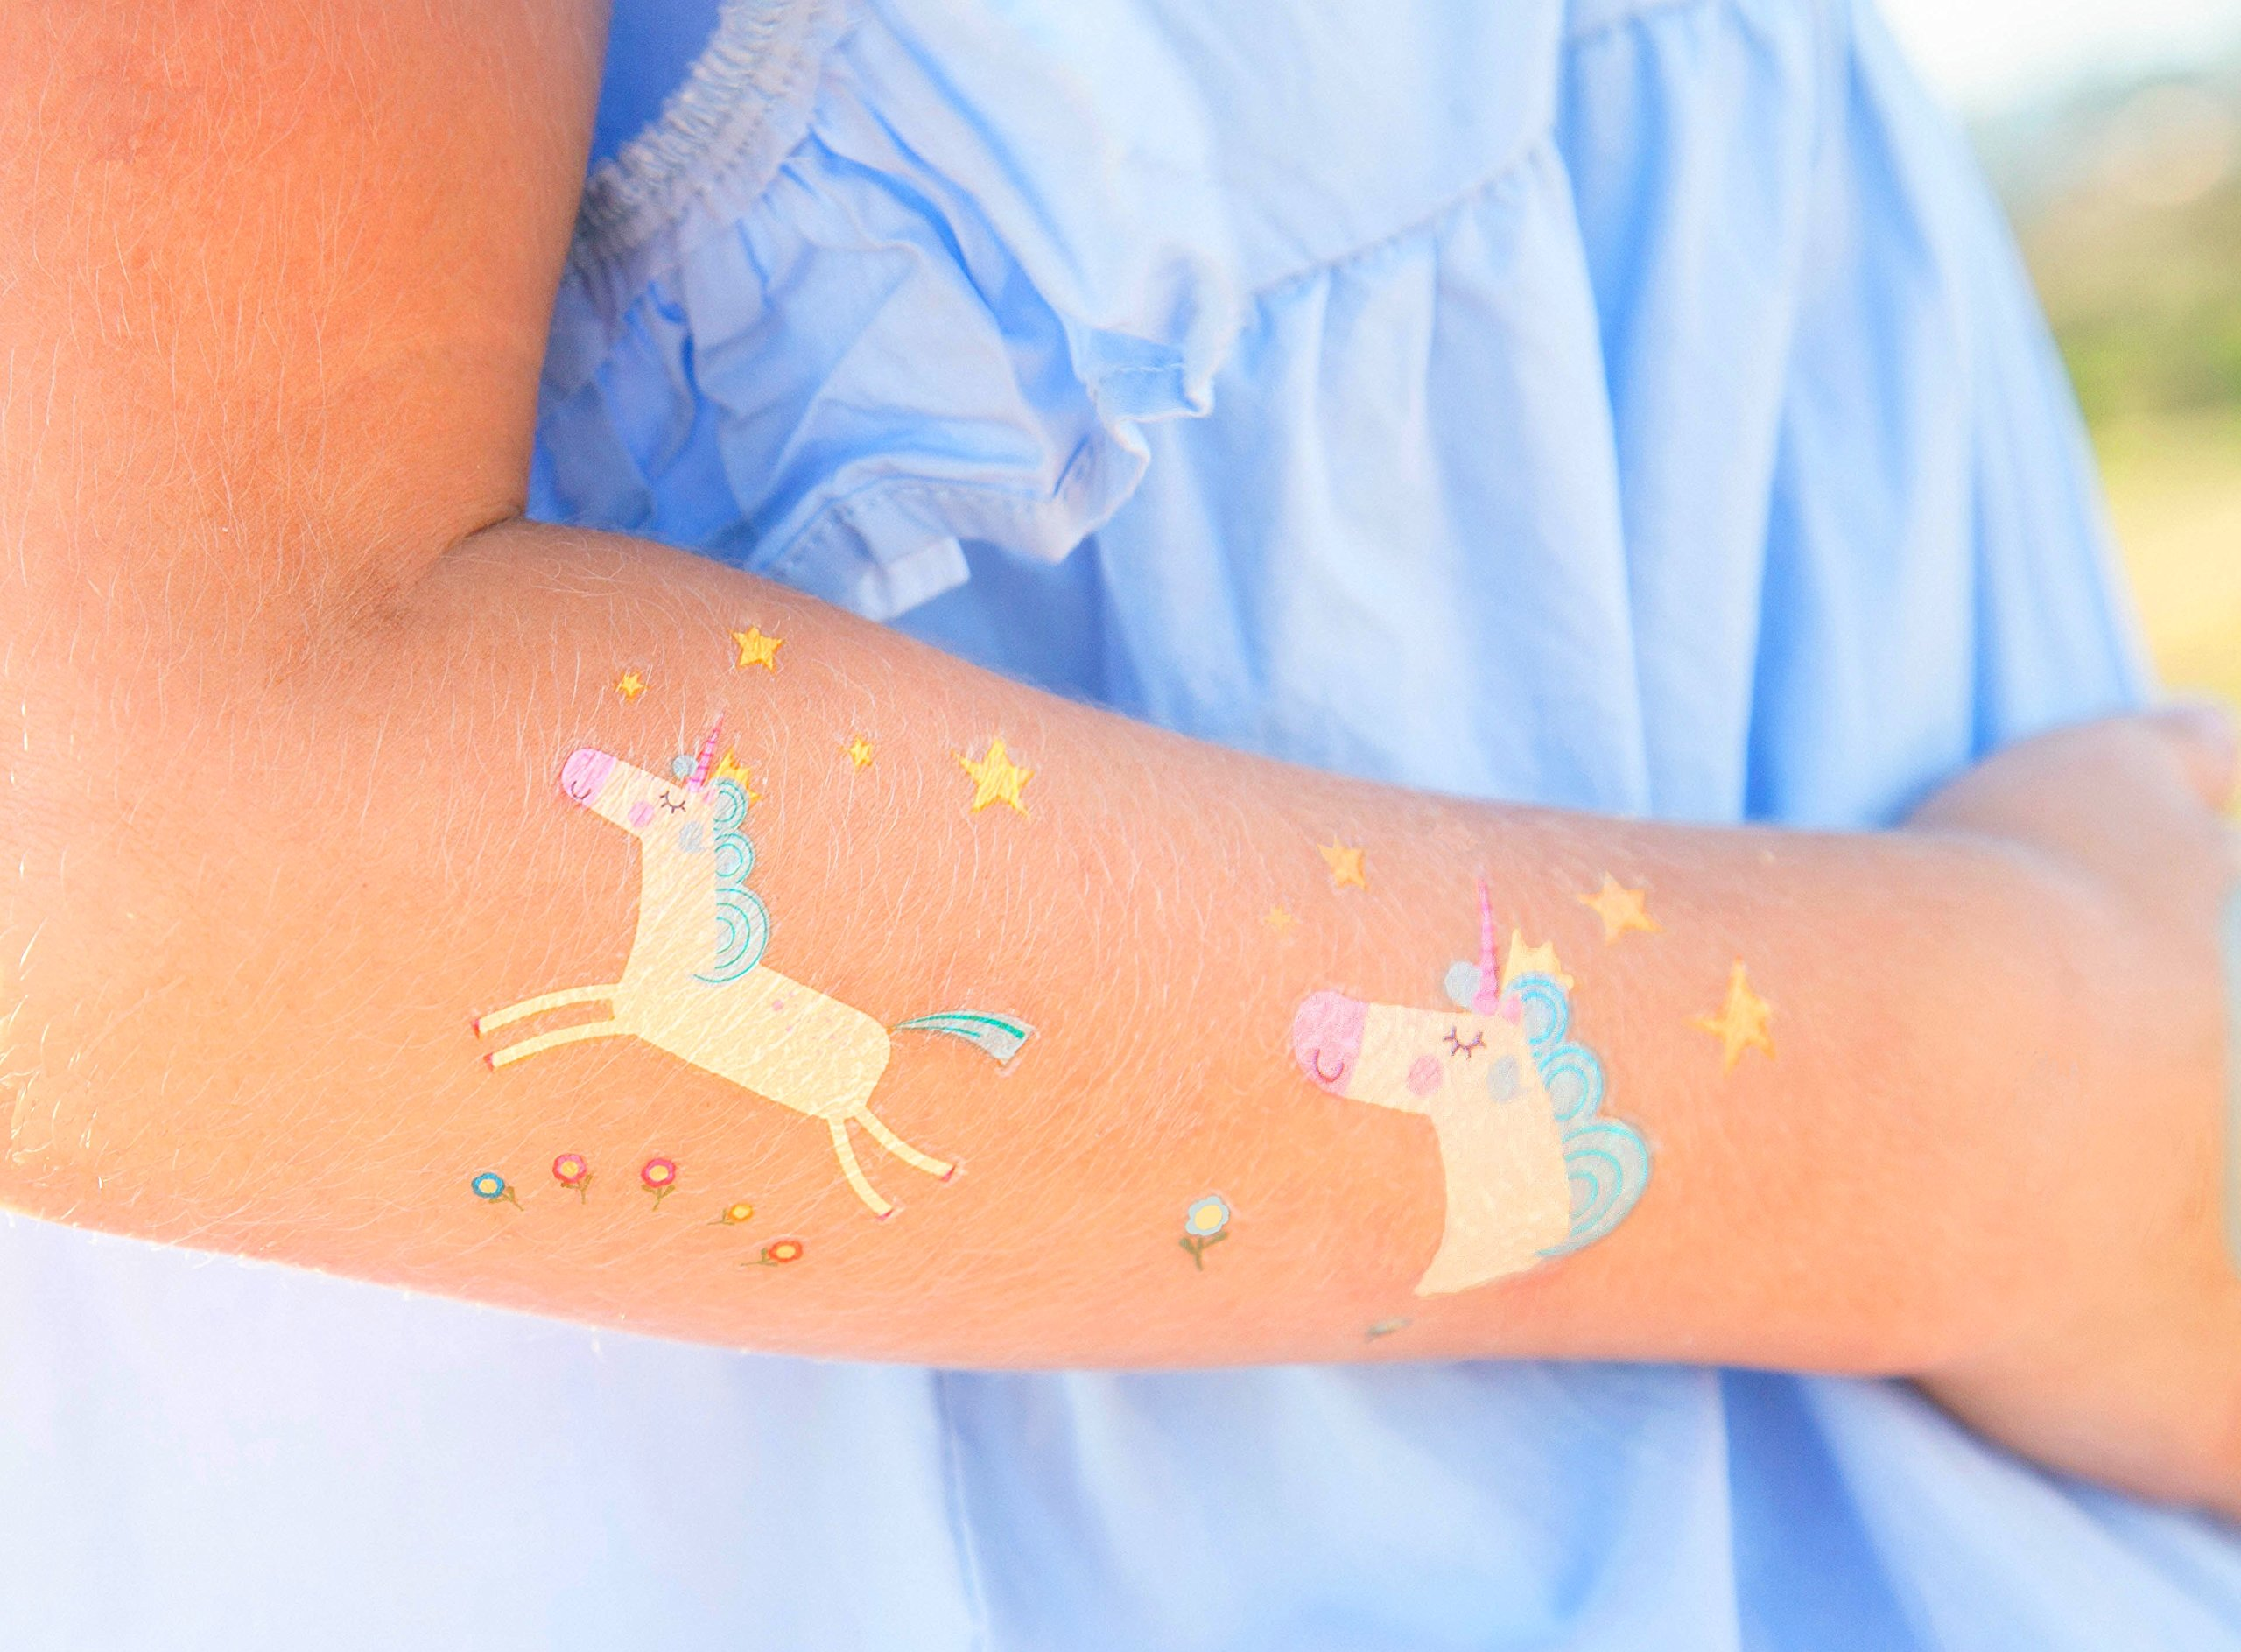 Unicorn Temporary Tattoos for Kids - Unicorn Party Favors, Birthday Decorations and Supplies - Non-toxic and Waterproof… 9